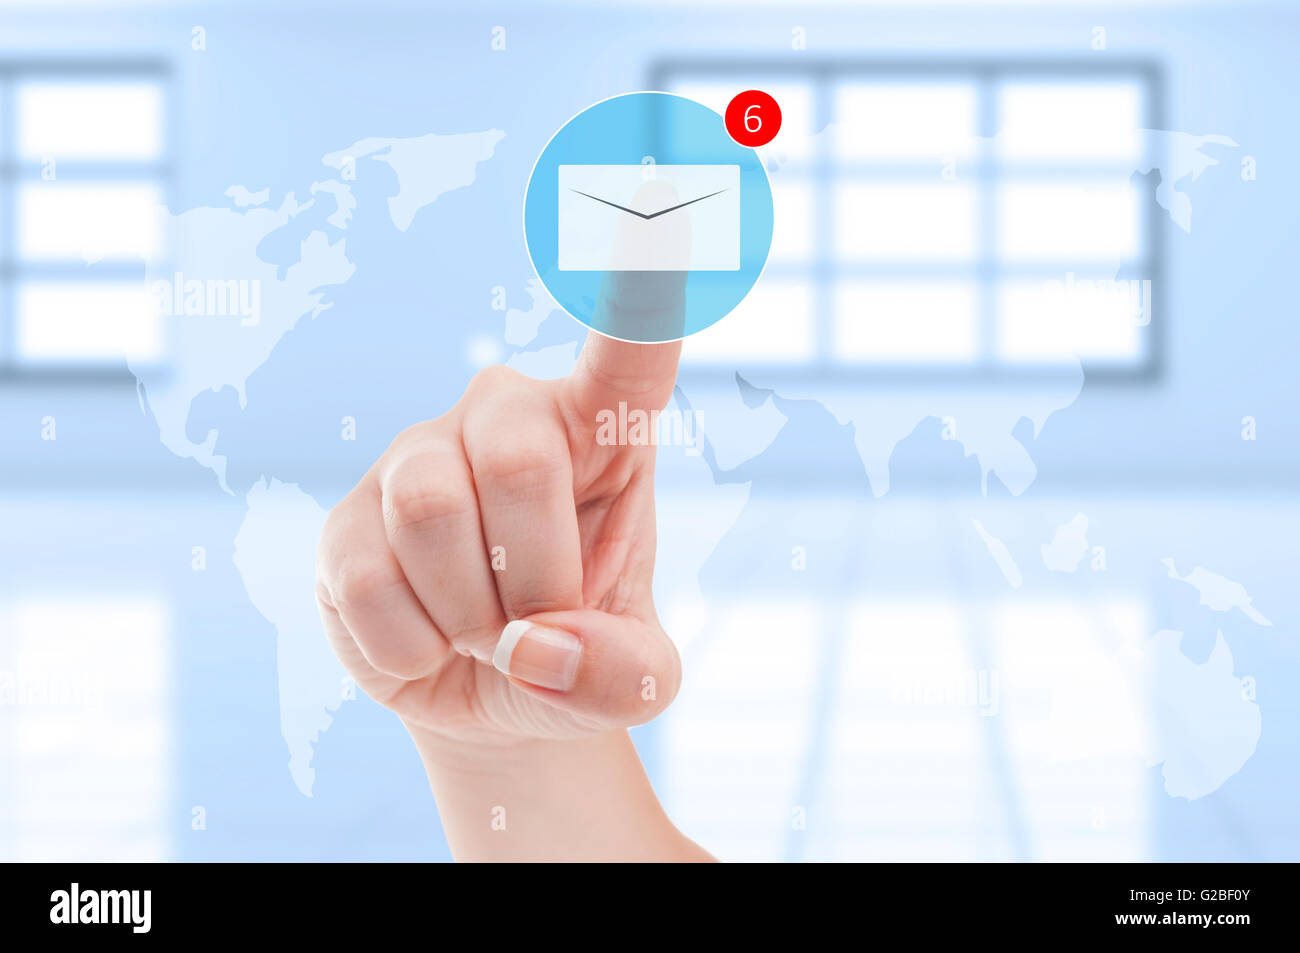 New emails inbox futuristic concept with finger pressing digital envelope on transparent digital display screen - Stock Image